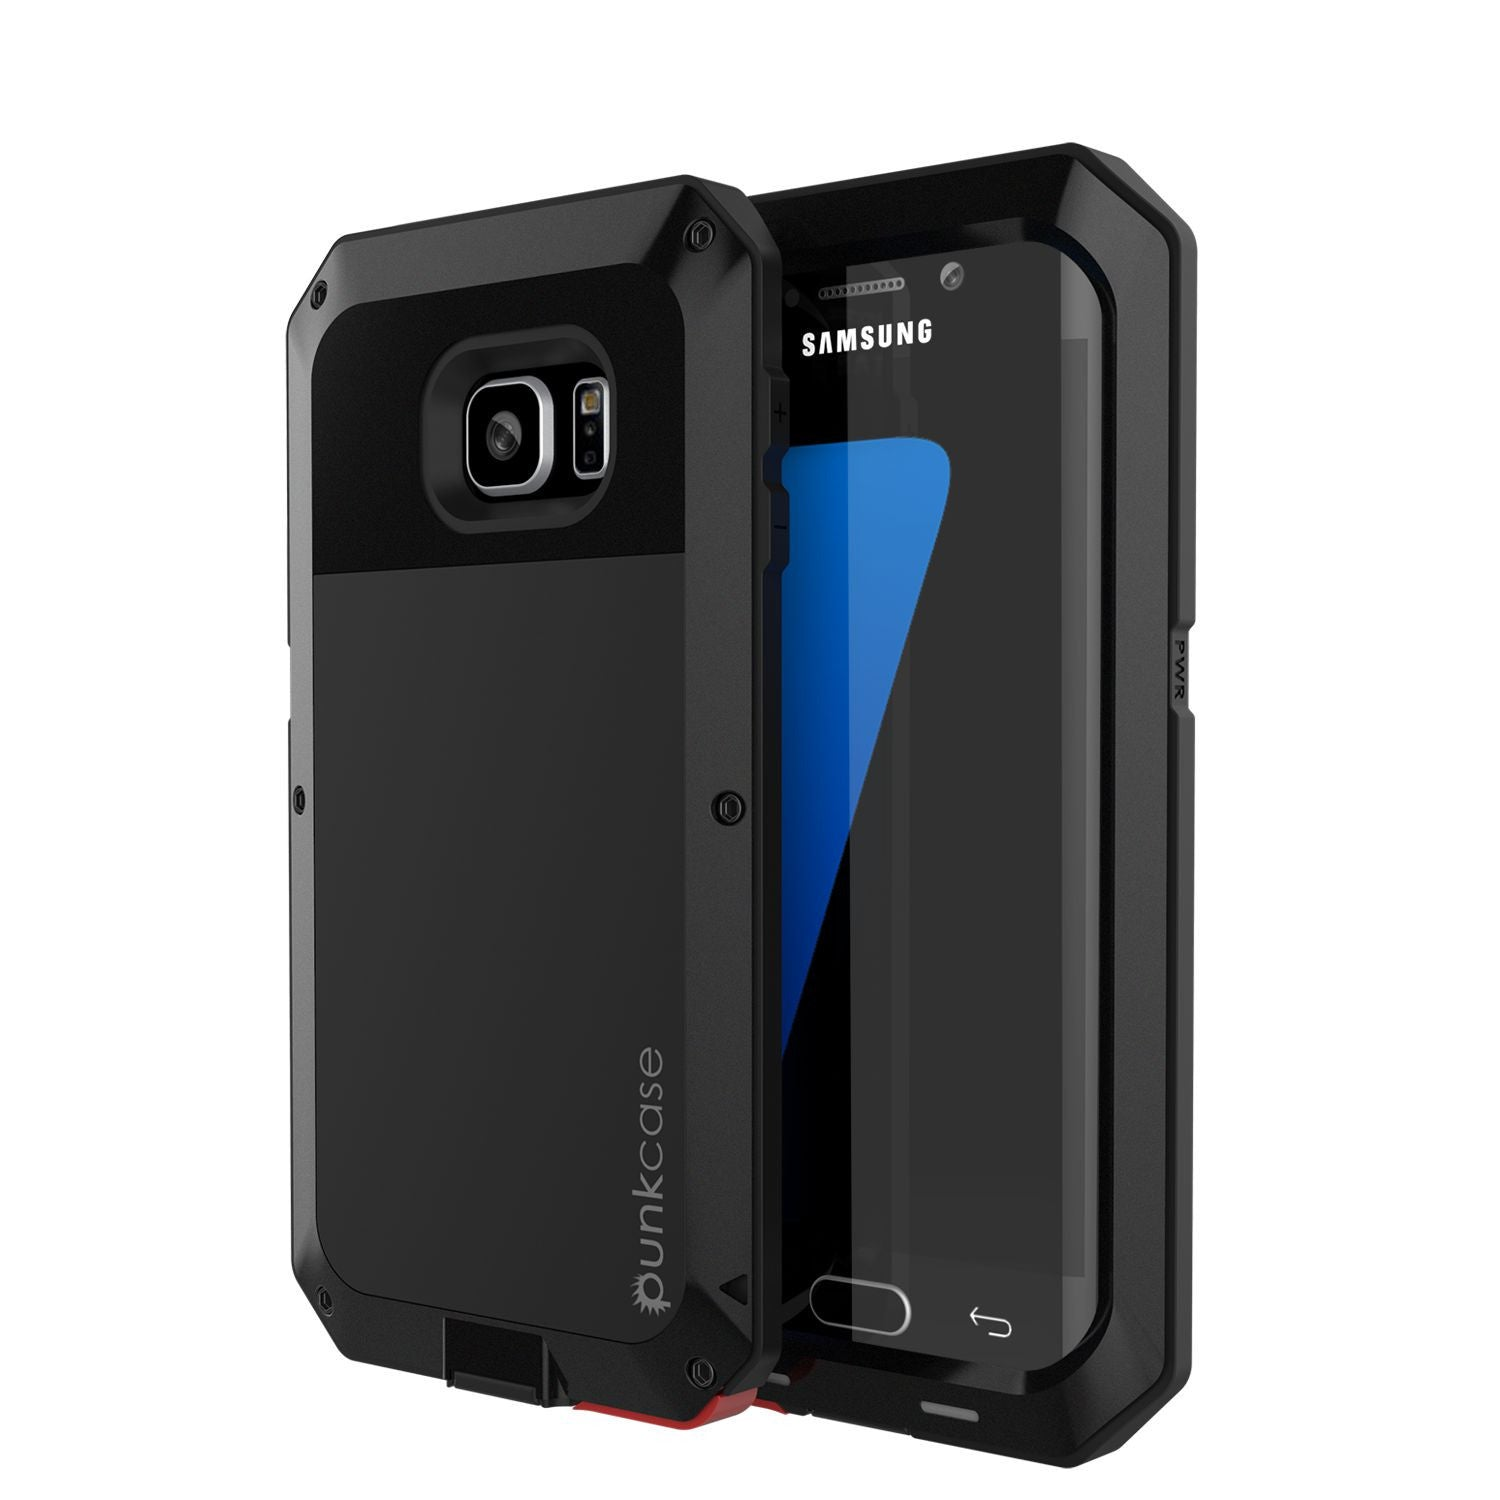 PUNKCASE - Metallic Series Shockproof Armor Case for Samsung S7 Edge | Black